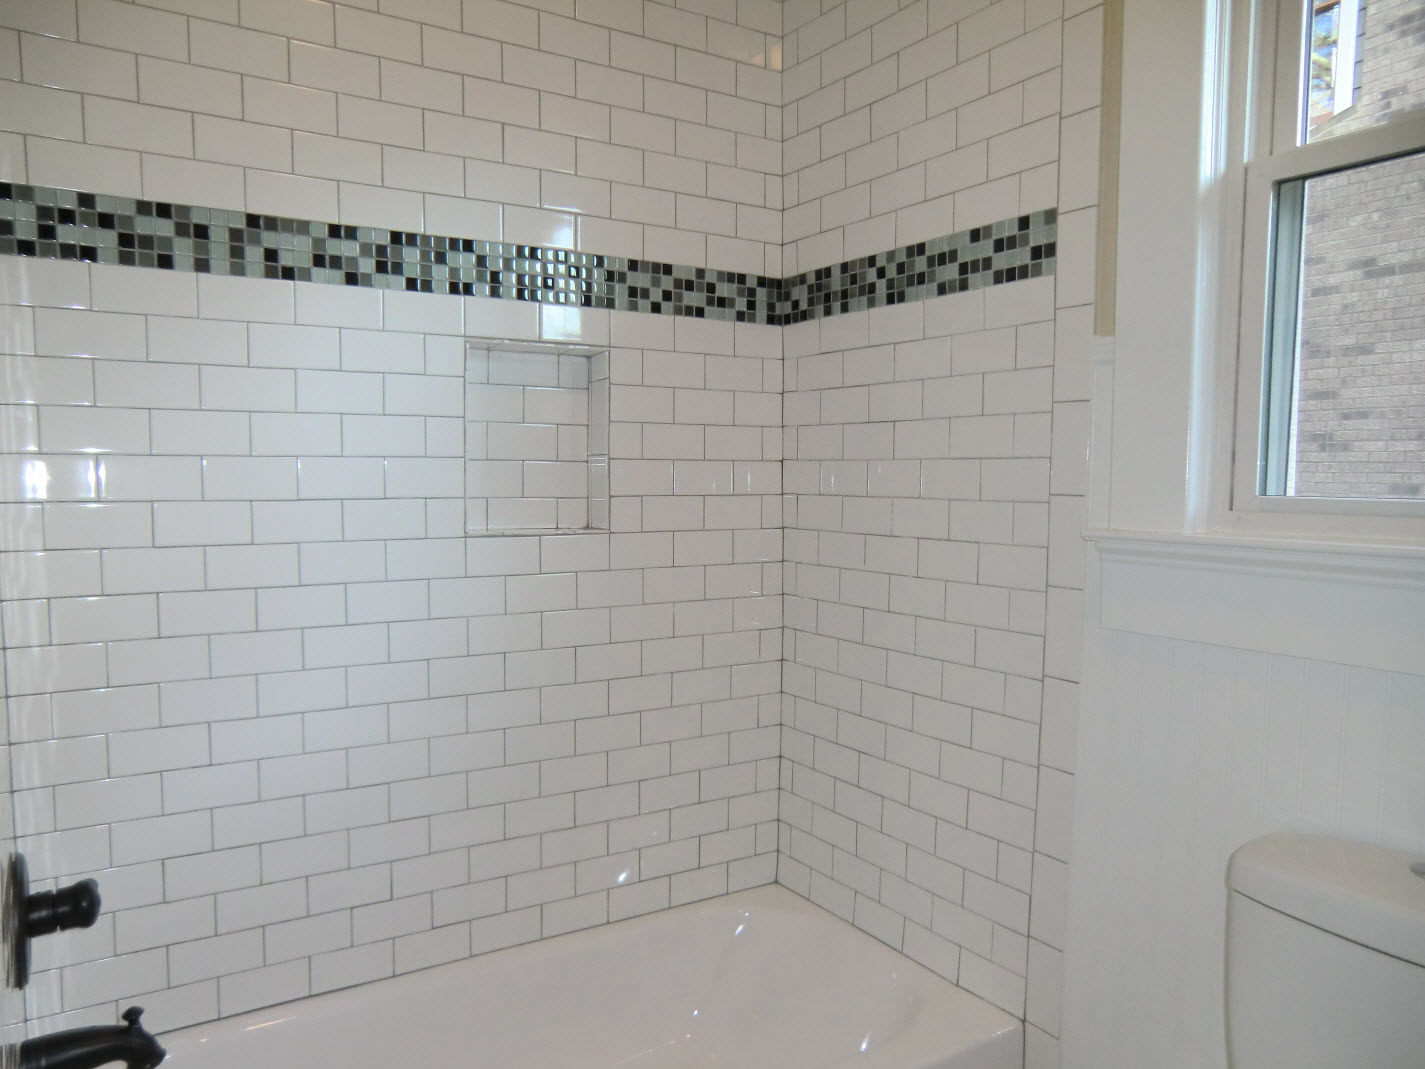 ... Guest Bath Tub With Subway Tile Surround. ...